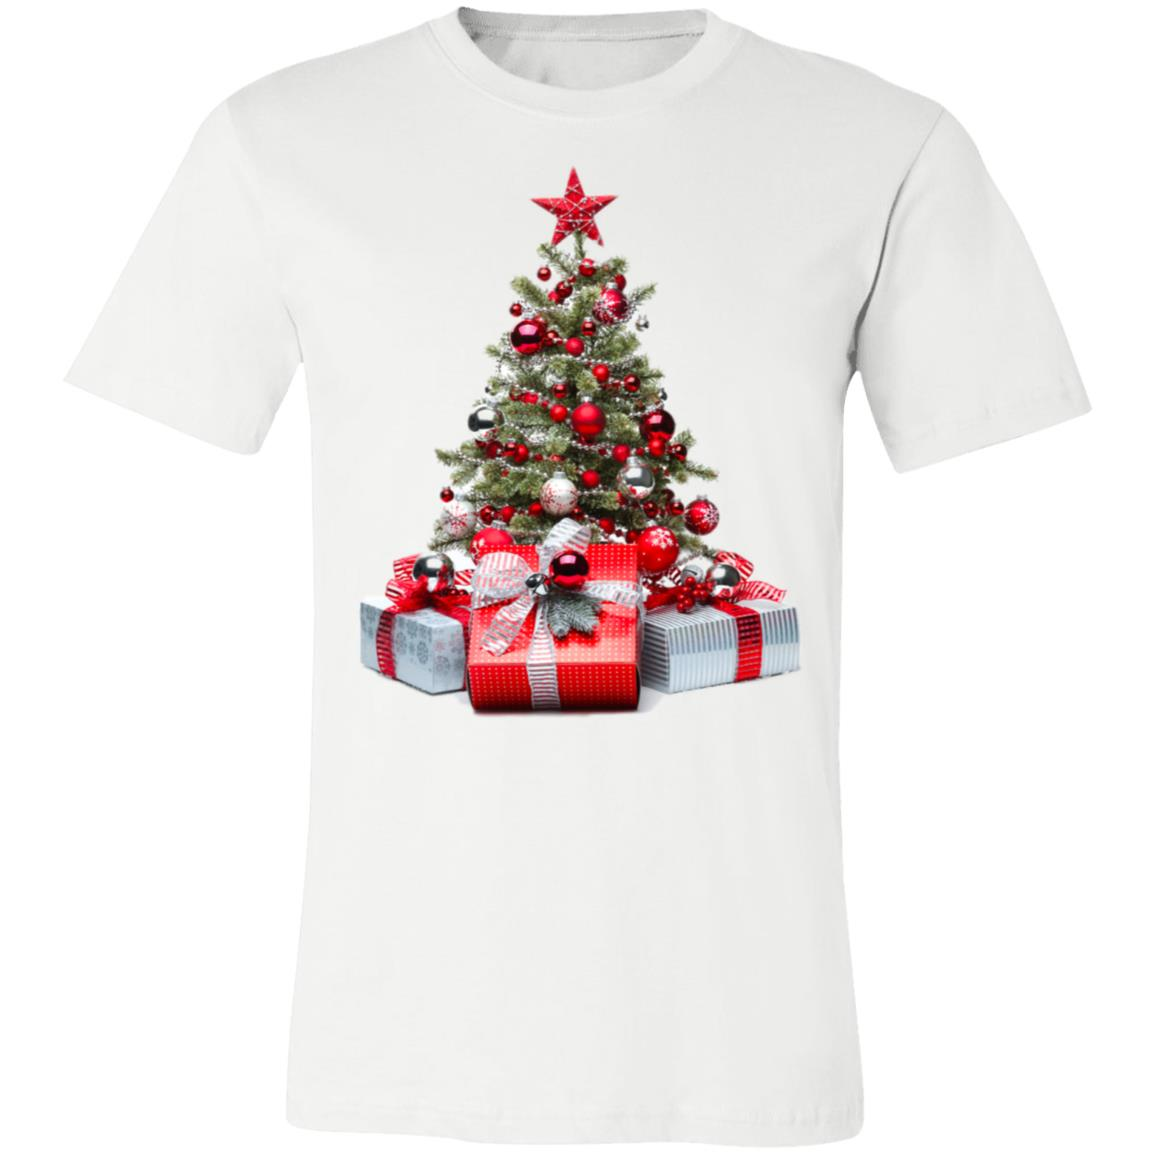 Christmas Tree Ornaments And Gifts Printing Unisex Jersey Short-Sleeve T-Shirt